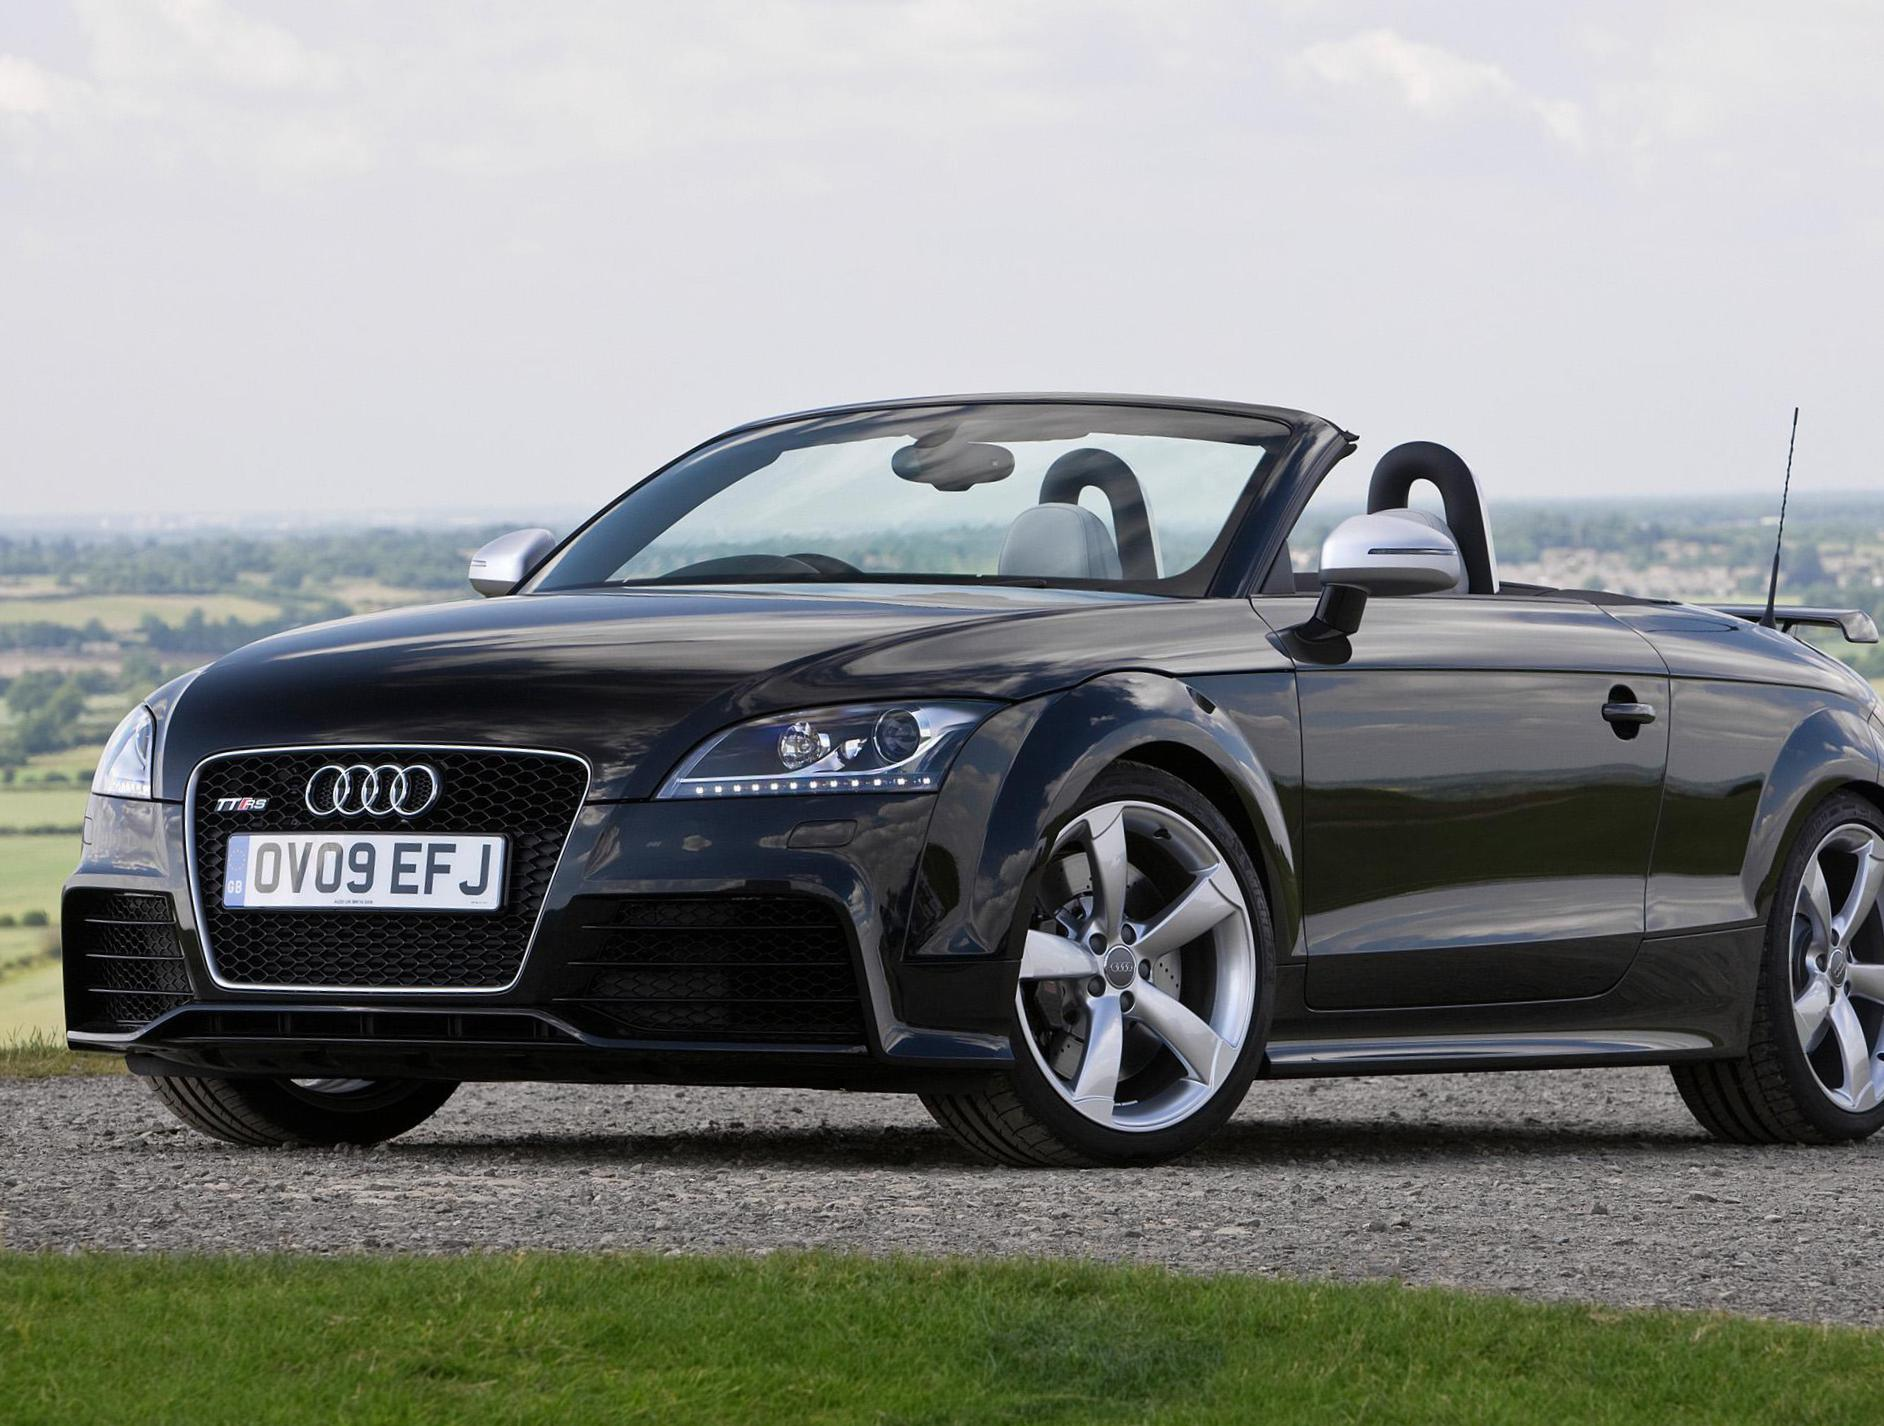 Audi TT RS Roadster Specification sedan